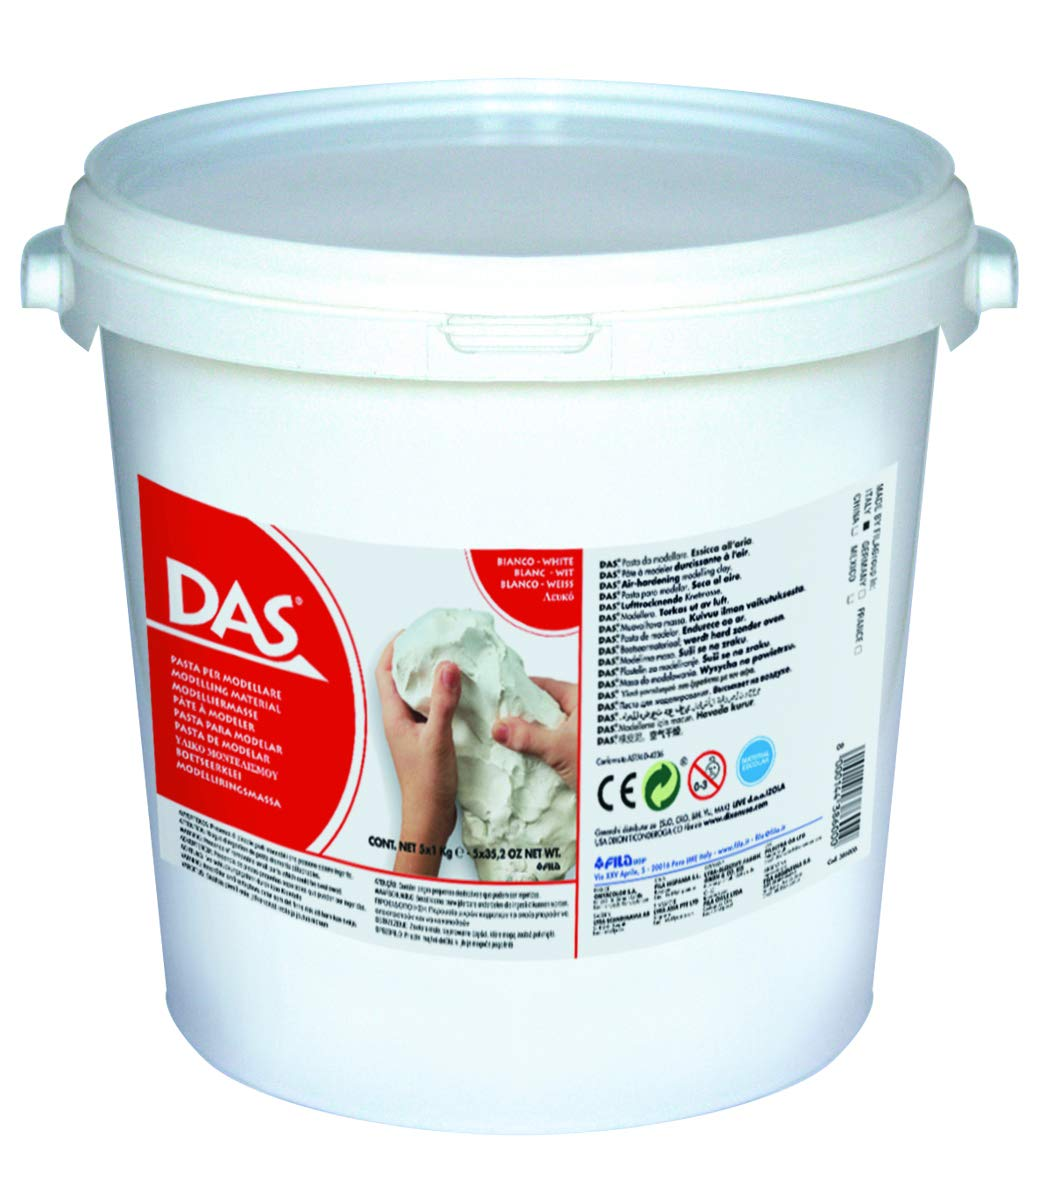 BEST Fimo Air Basic 8101 43 Air Drying Modelling Clay 1 Kg Flesh Colour UK STOCK